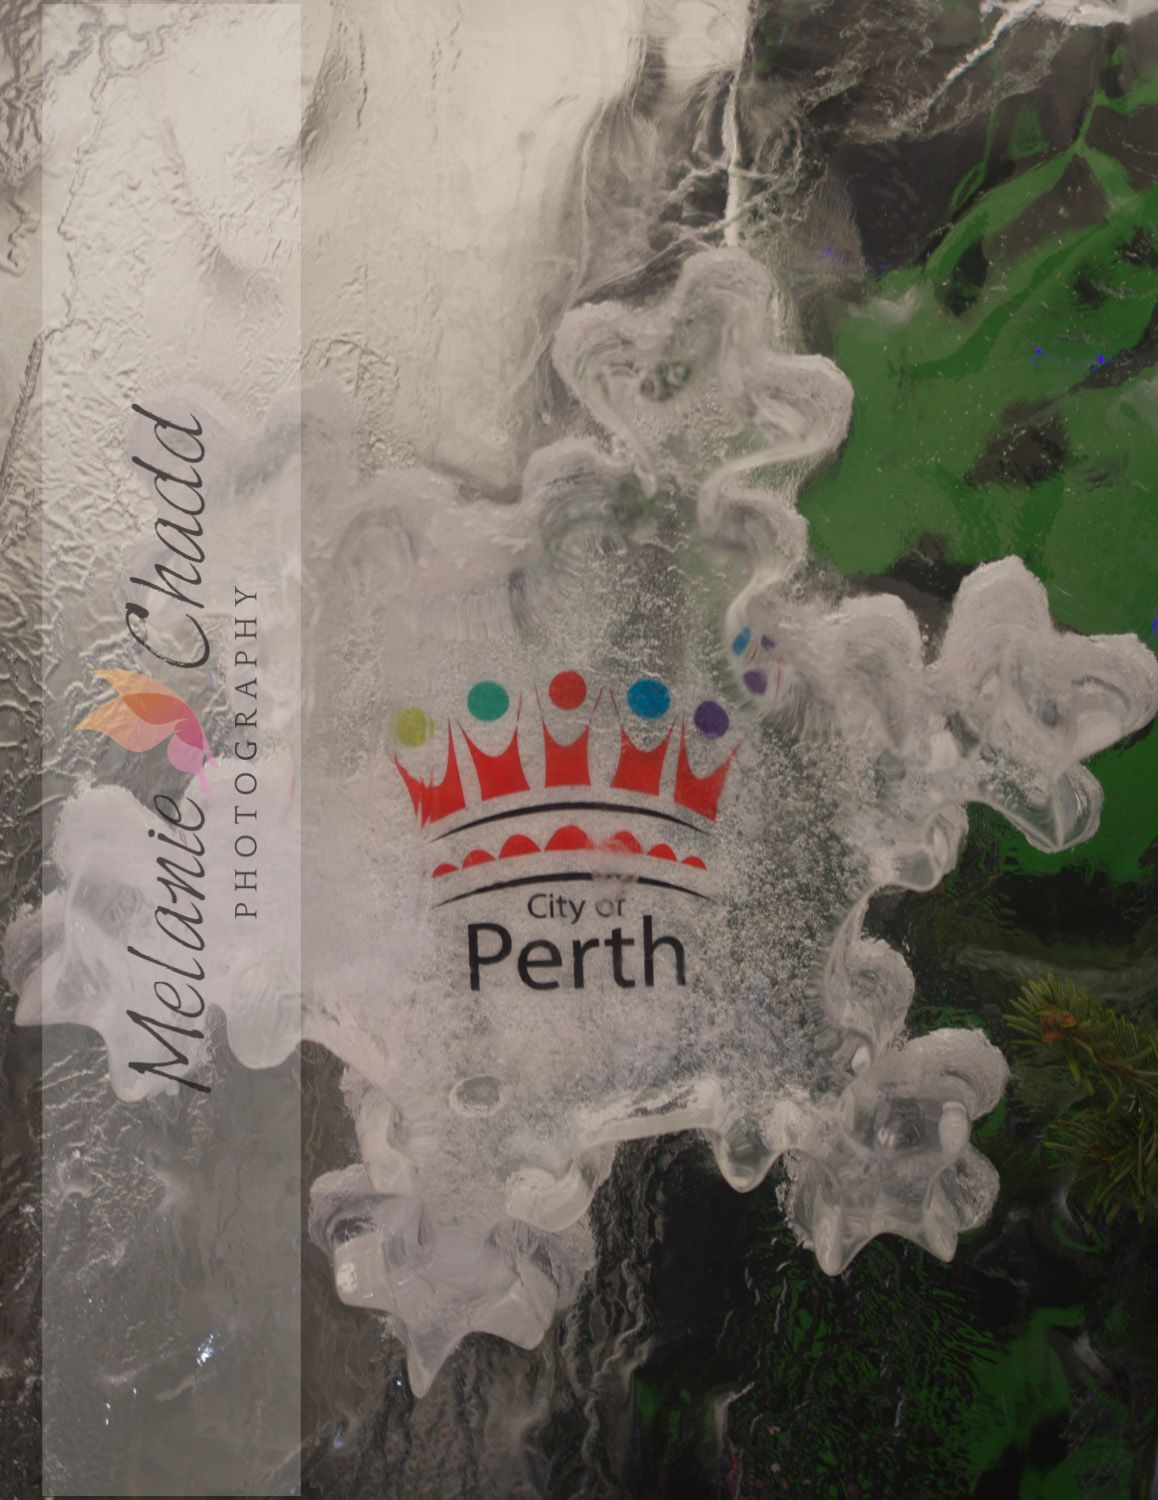 Perth Winter Festival and some brilliant ice sculptures